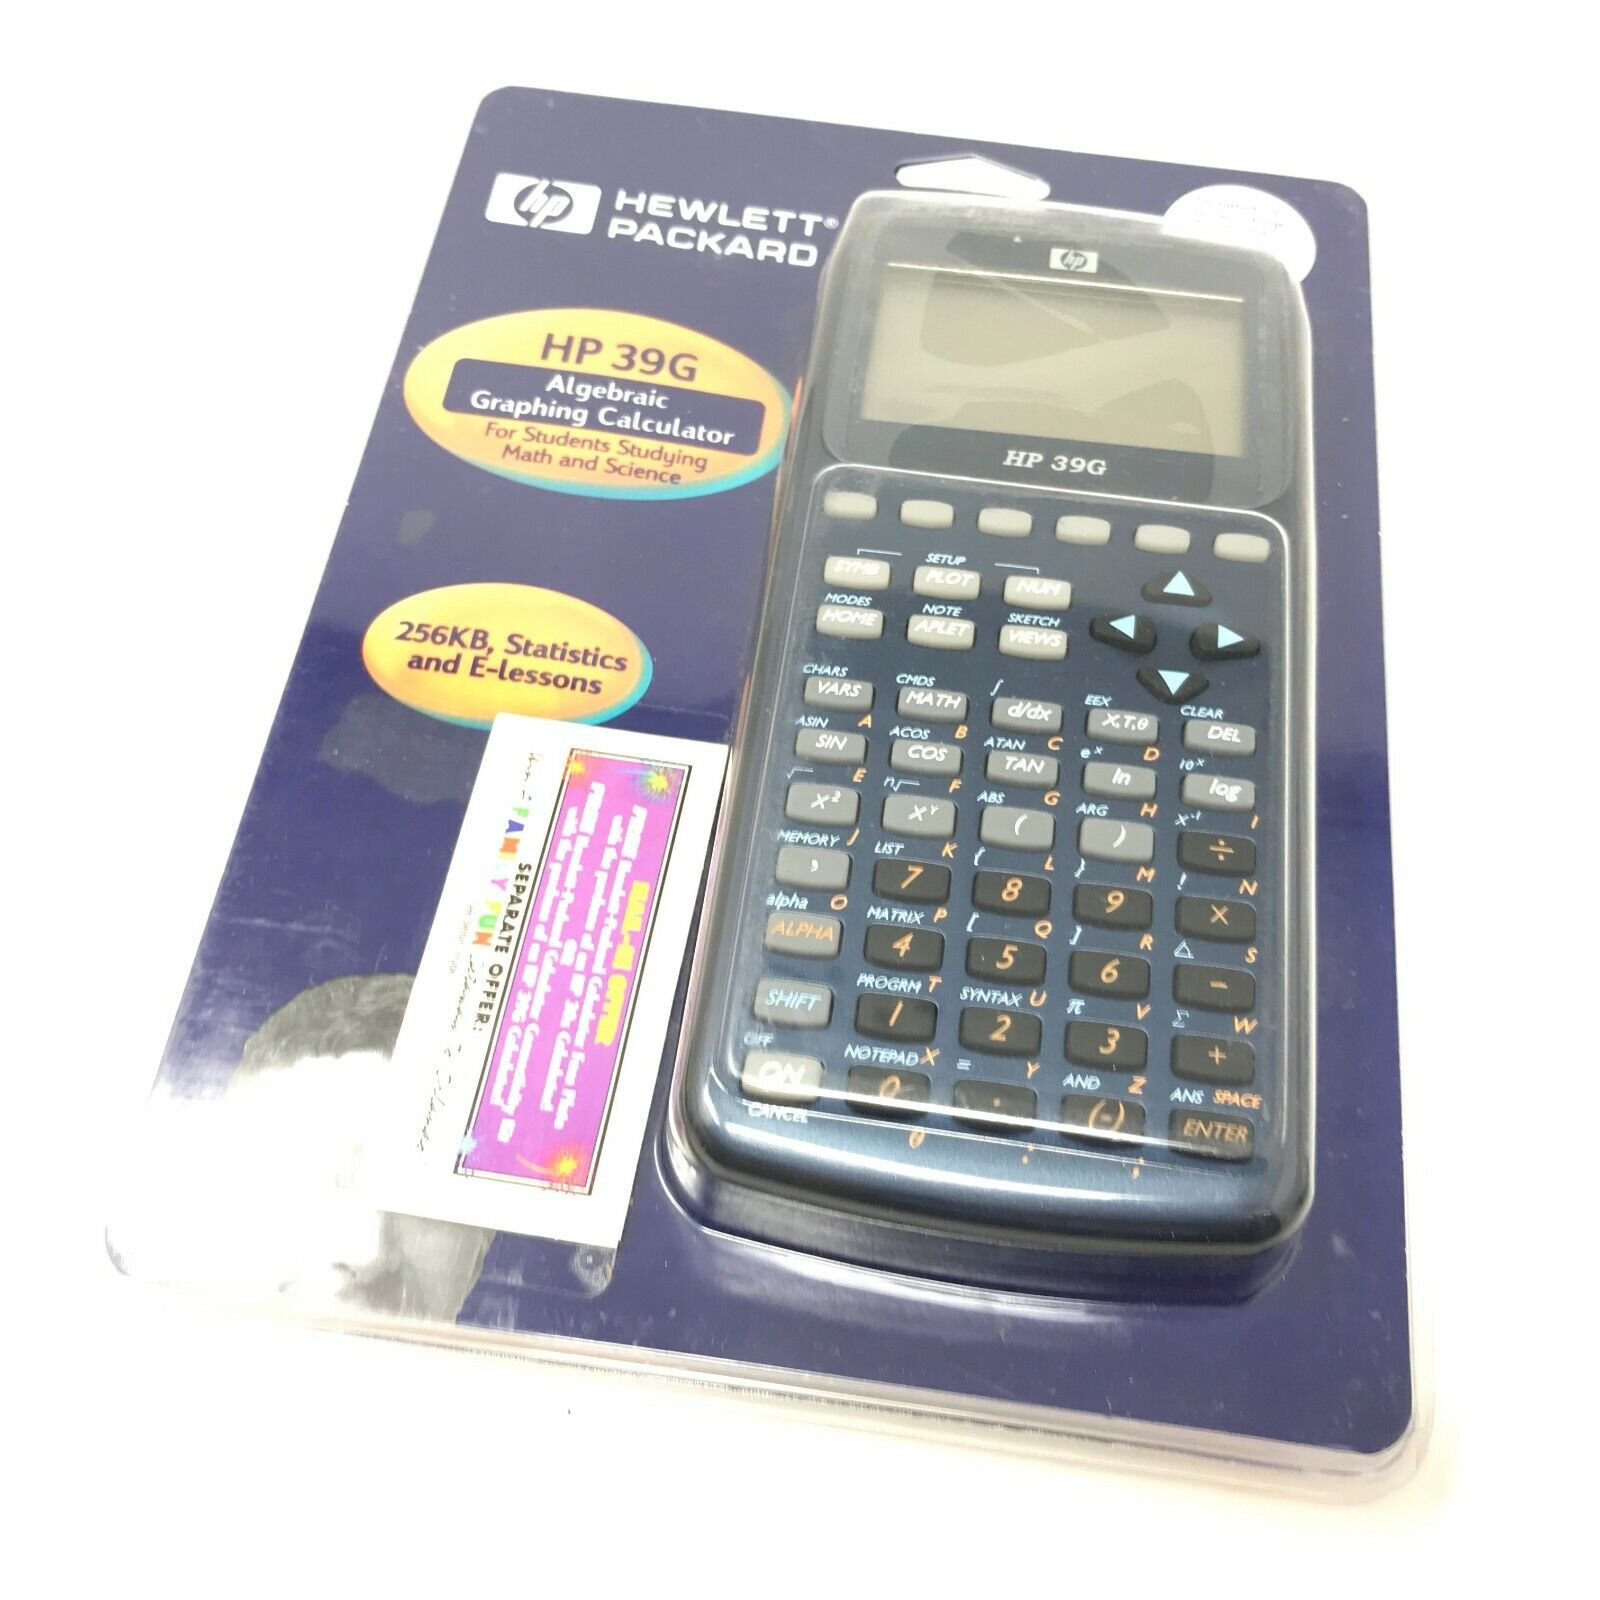 HP HP39G Algebraic Graphing Calculator